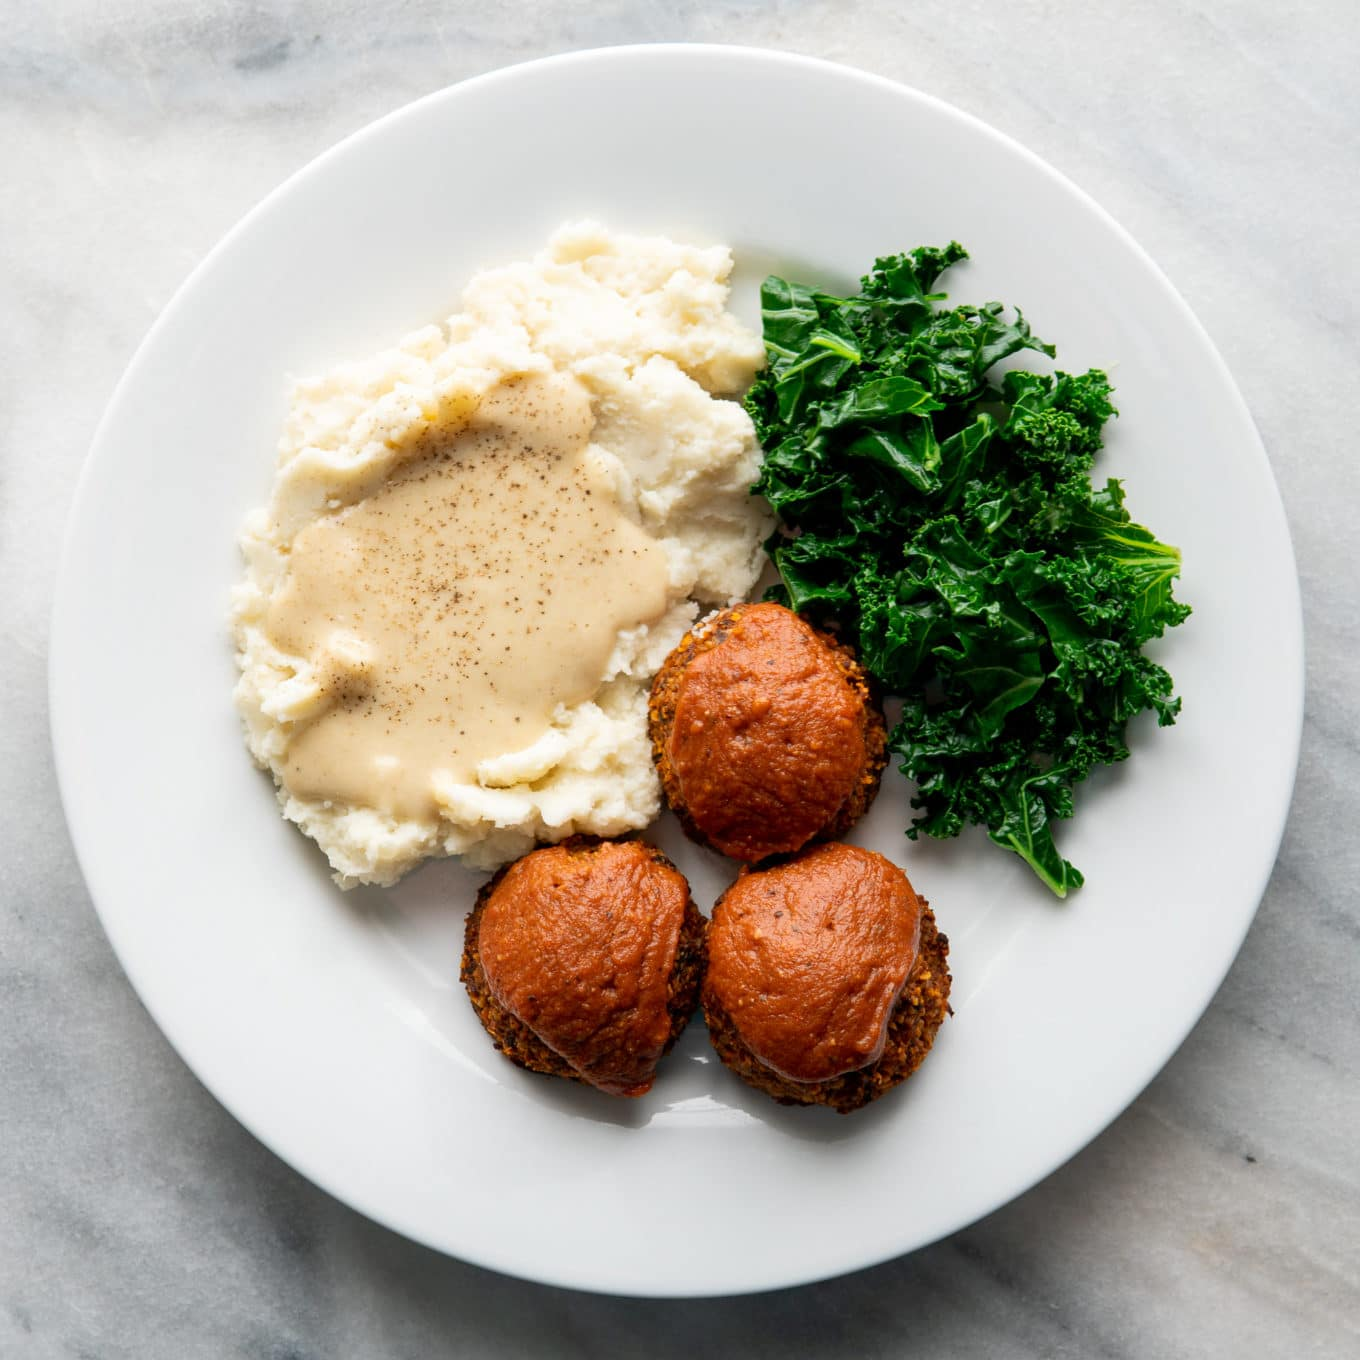 vegan meatloaf cups on a white plate with mashed potatoes and kale